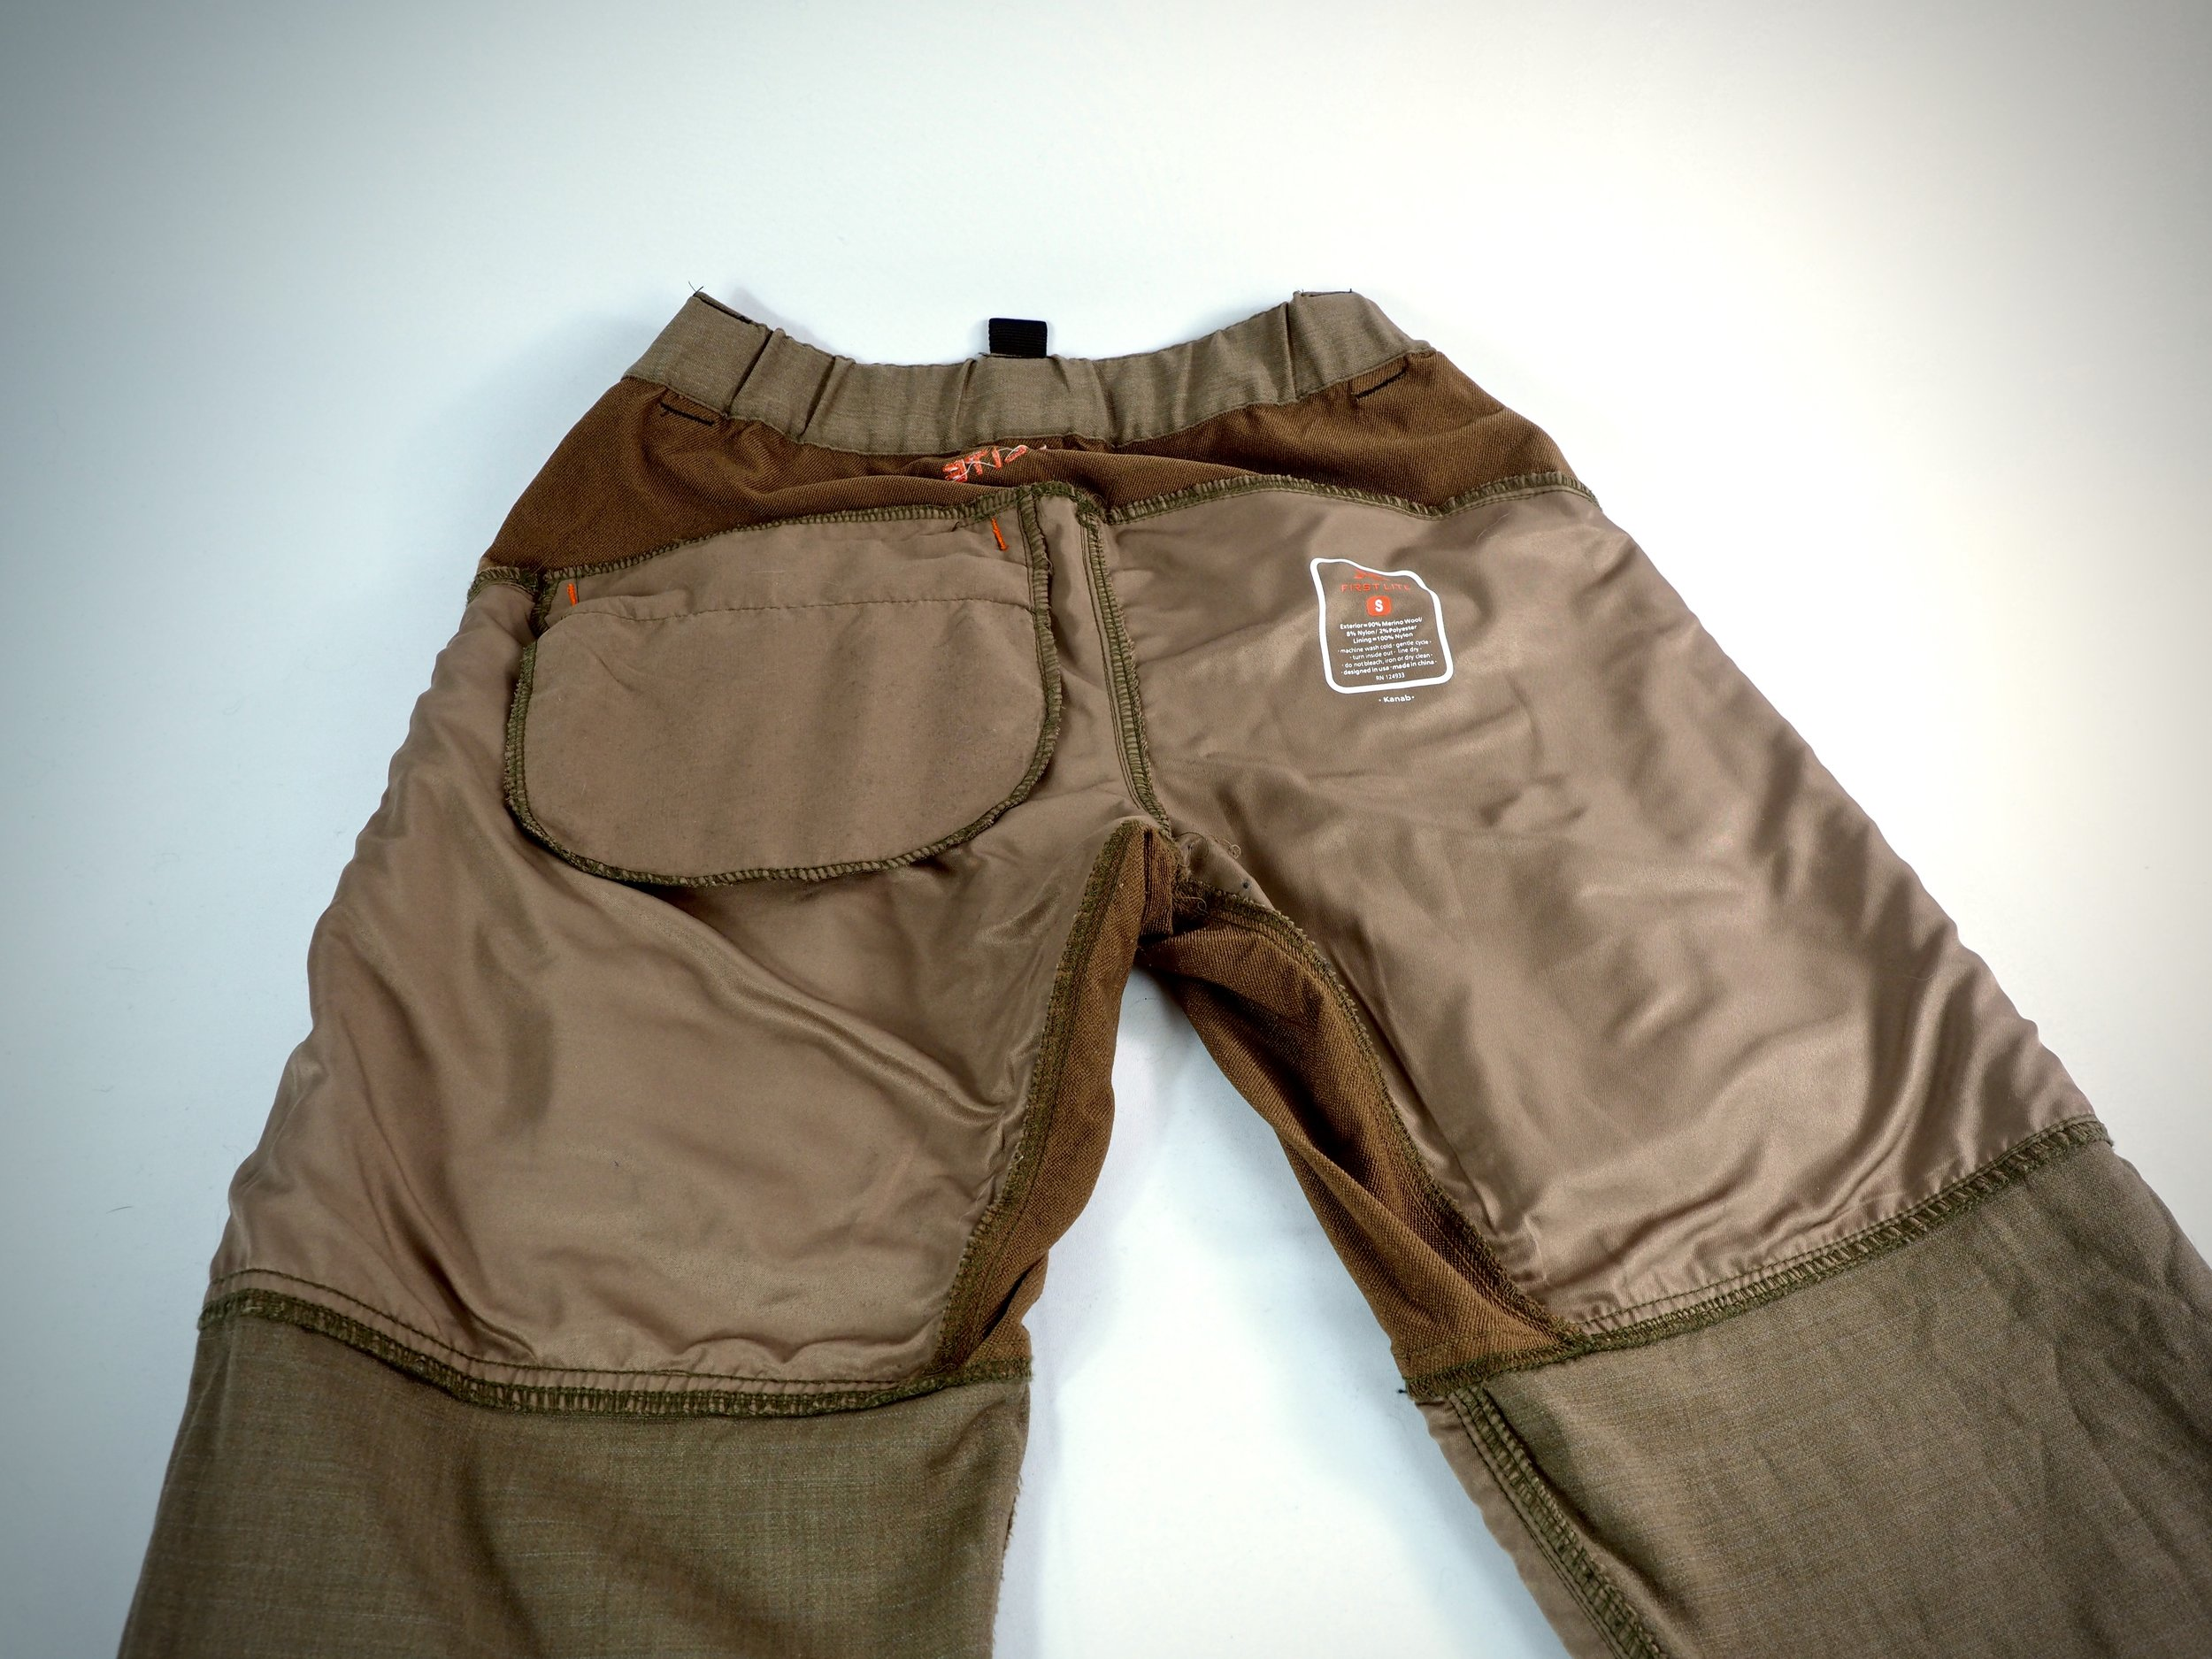 The inside of the pant is lined with some sort of nylon material. It's soft and comfortable against bare skin.